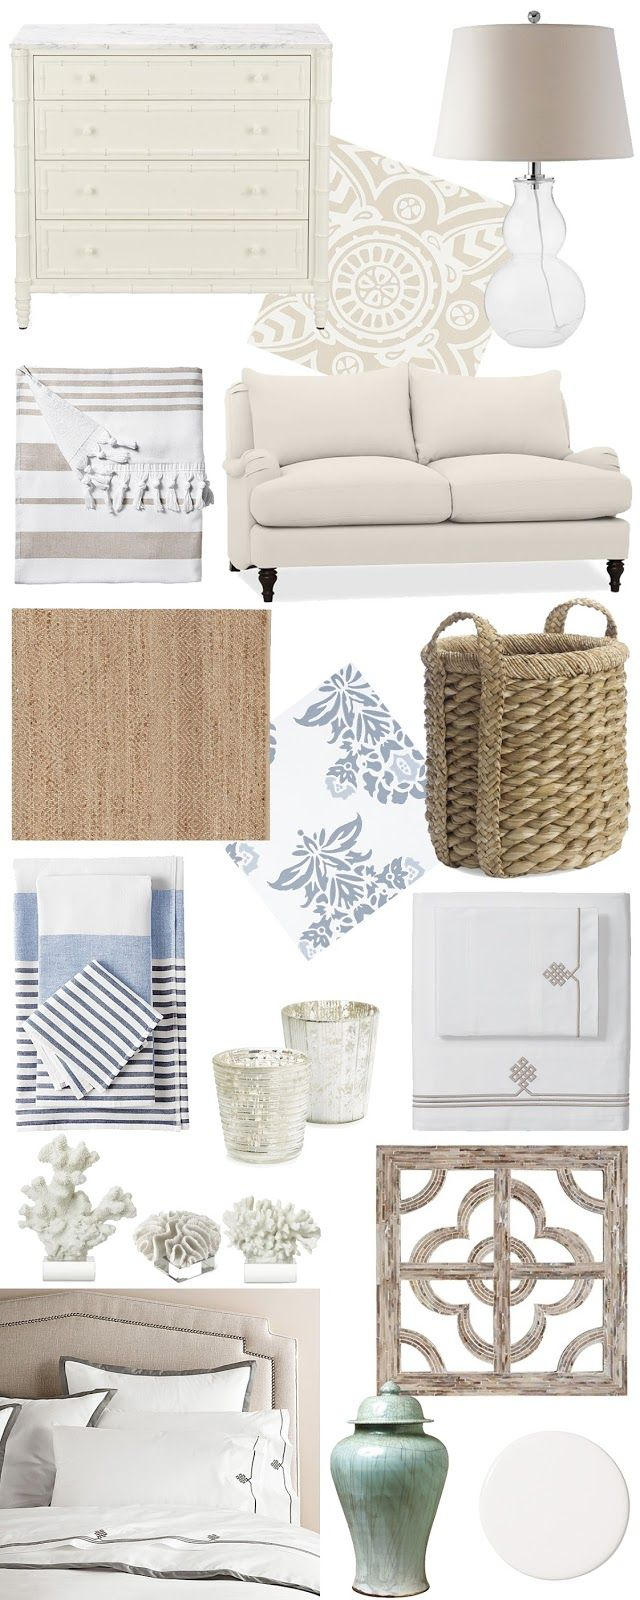 Living Room Wicker Furniture 25 Best Ideas About White Wicker On Pinterest White Wicker